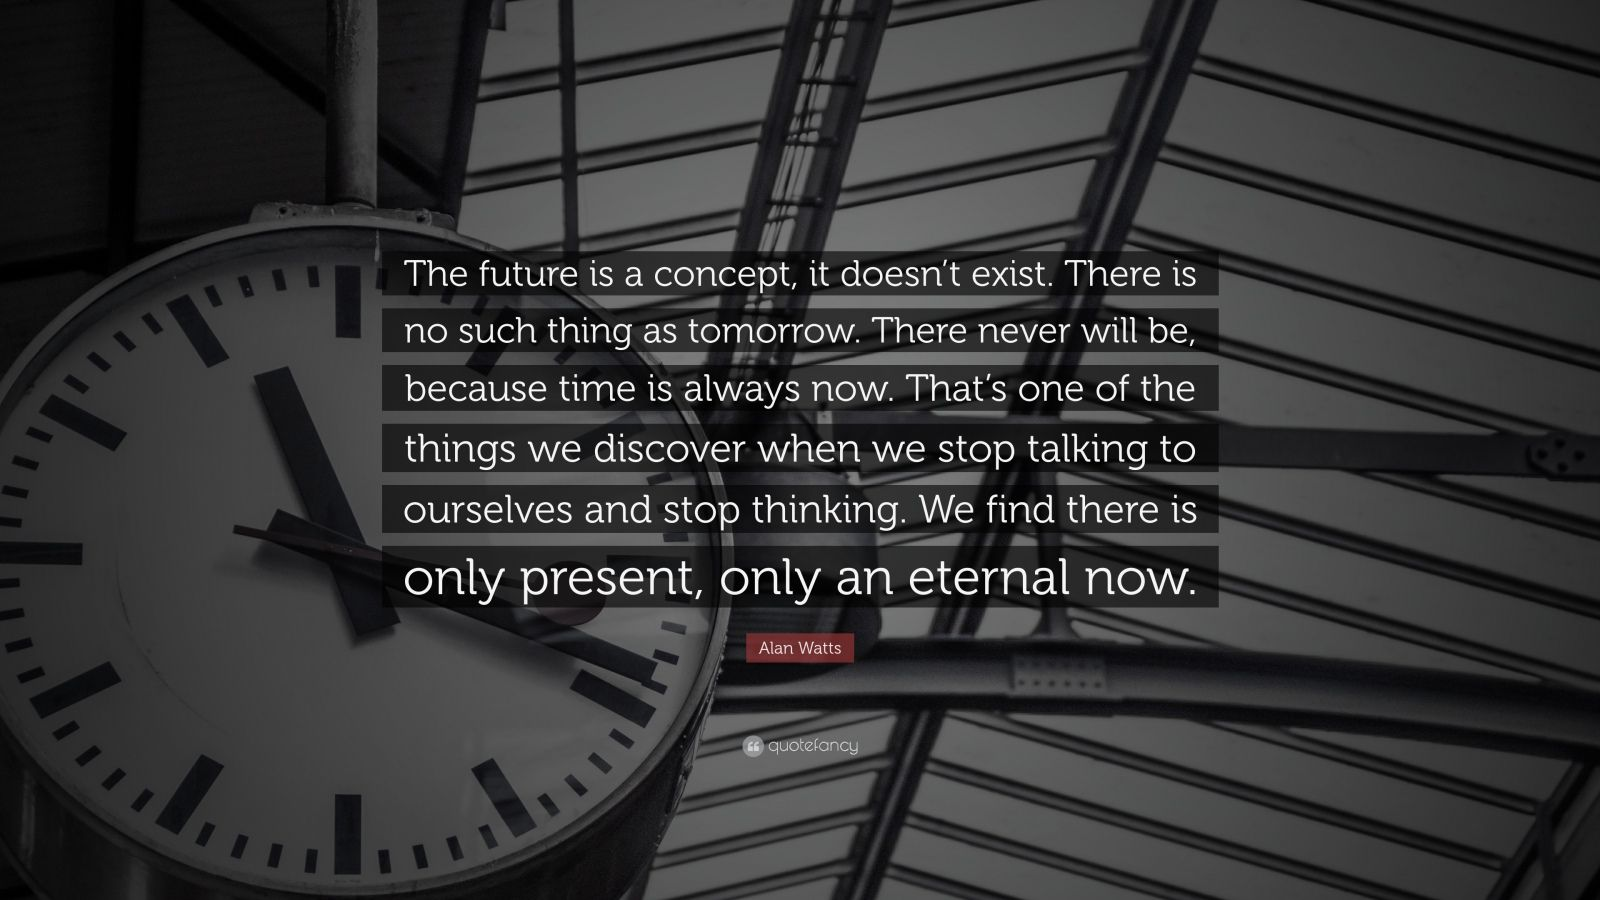 "Alan Watts Quote: ""The future is a concept, it doesn't exist. There is no such thing as tomorrow. There never will be, because time is always now. That's one of the things we discover when we stop talking to ourselves and stop thinking. We find there is only present, only an eternal now."""